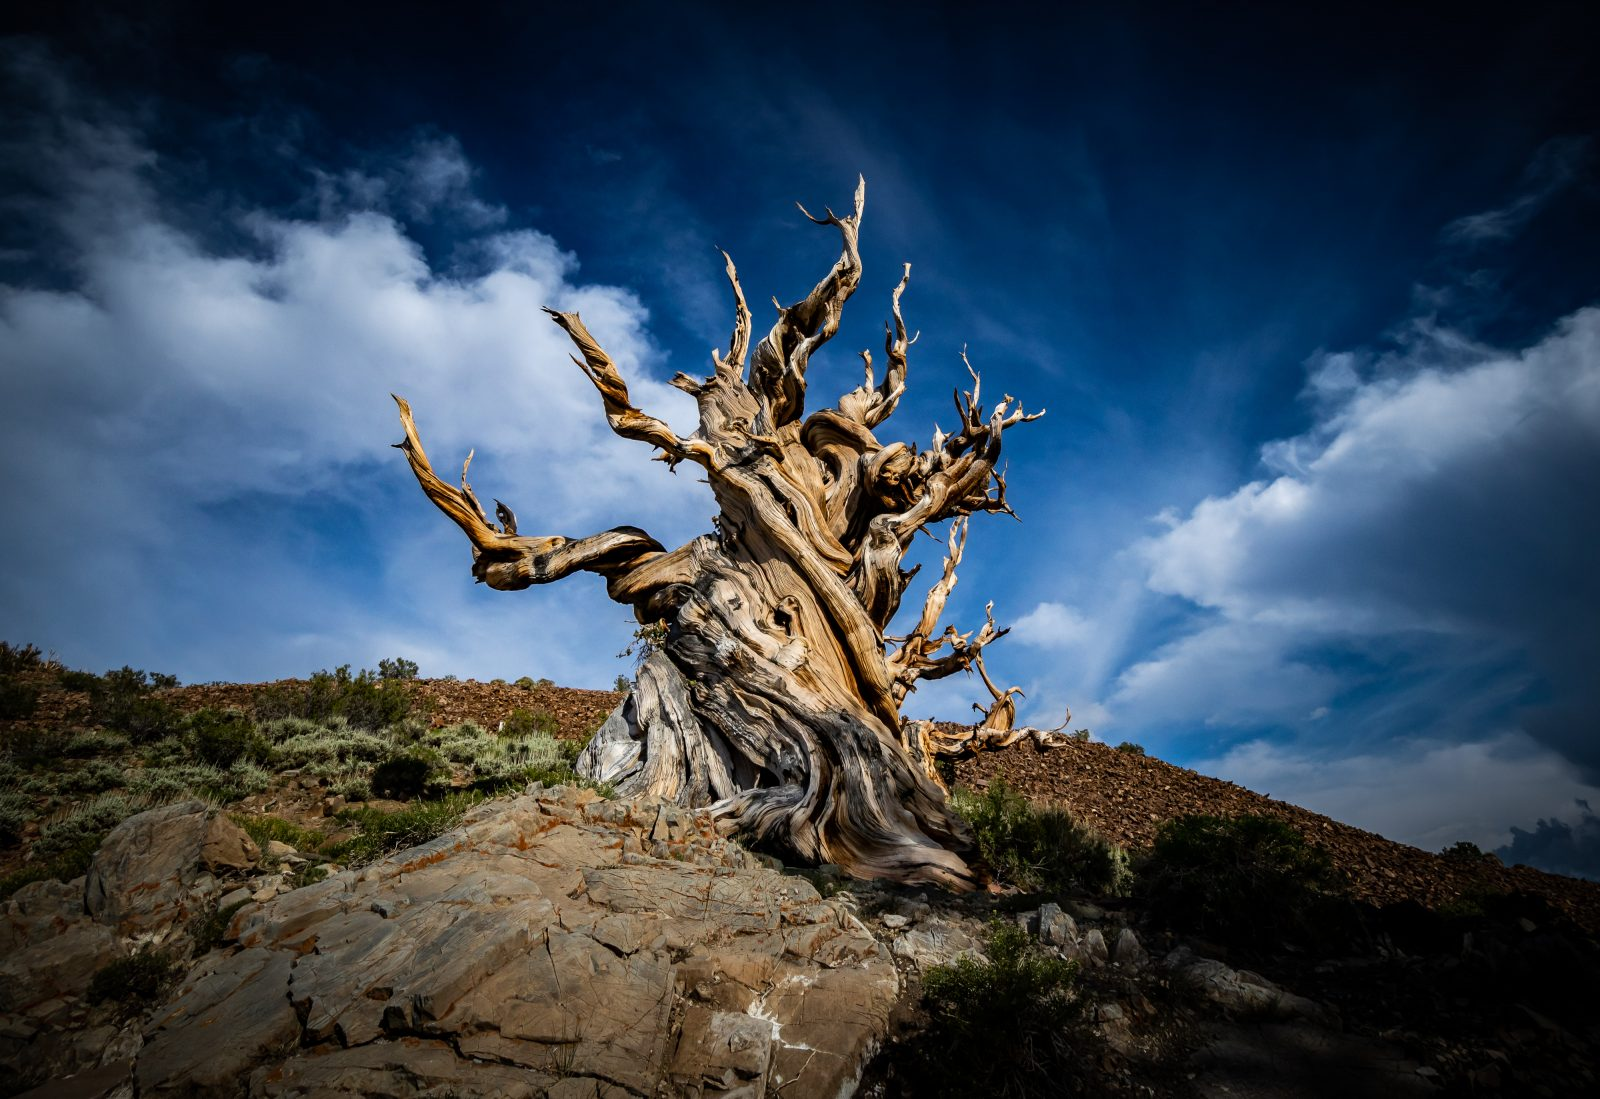 Gnarly Twisted Bristlecone Pine Tree (tai-wii-uhh)